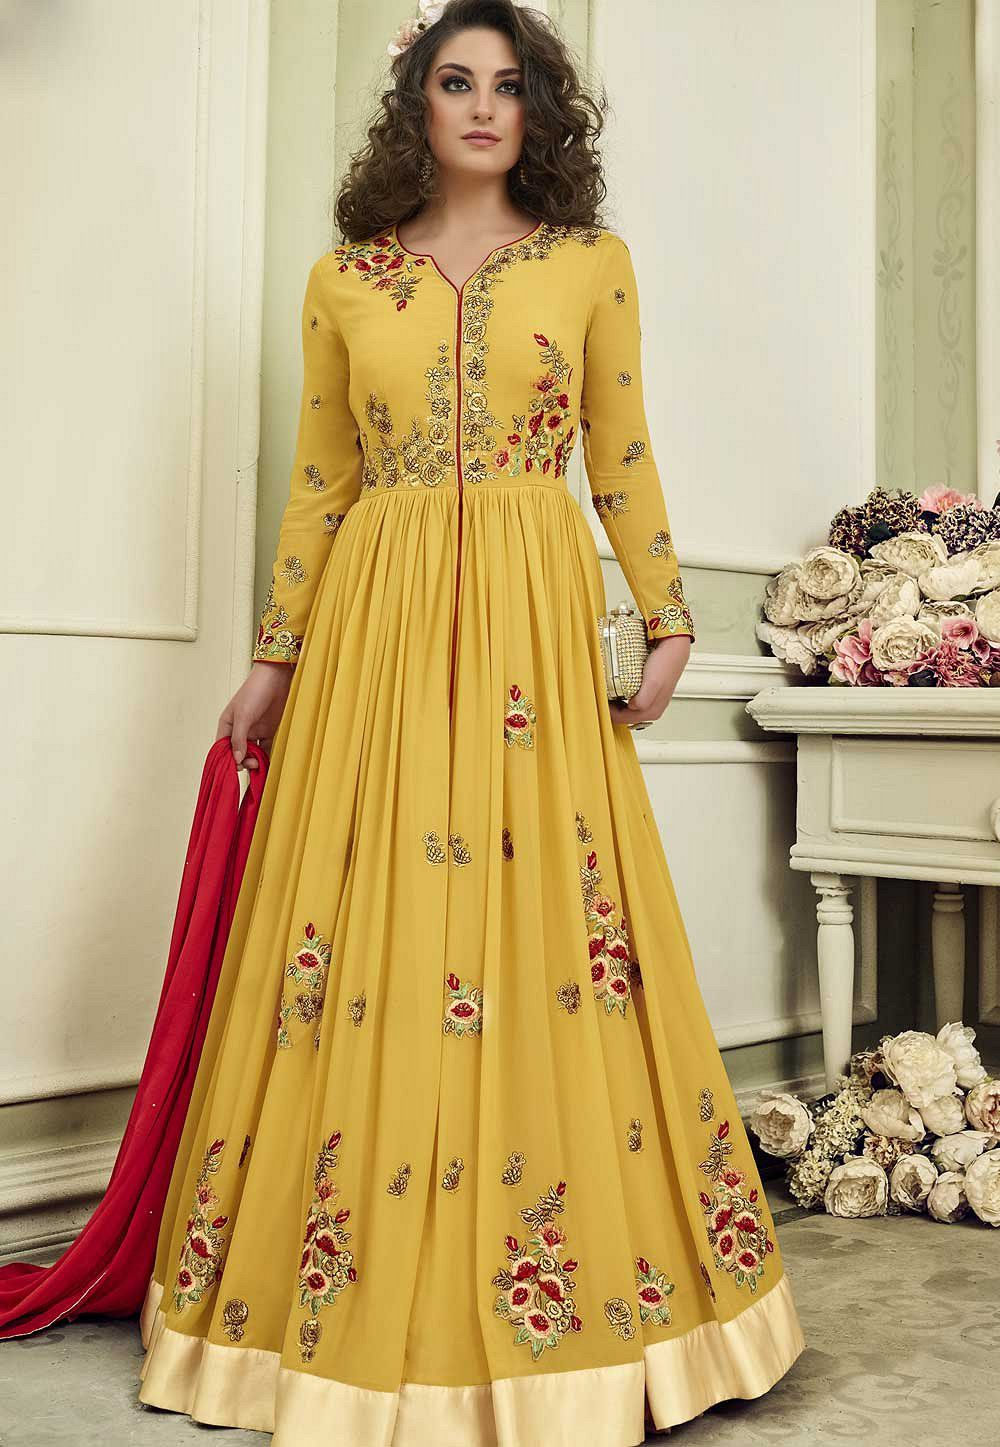 36a6461de5 Buy Yellow color wedding anarkali suit in UK, USA and Canada